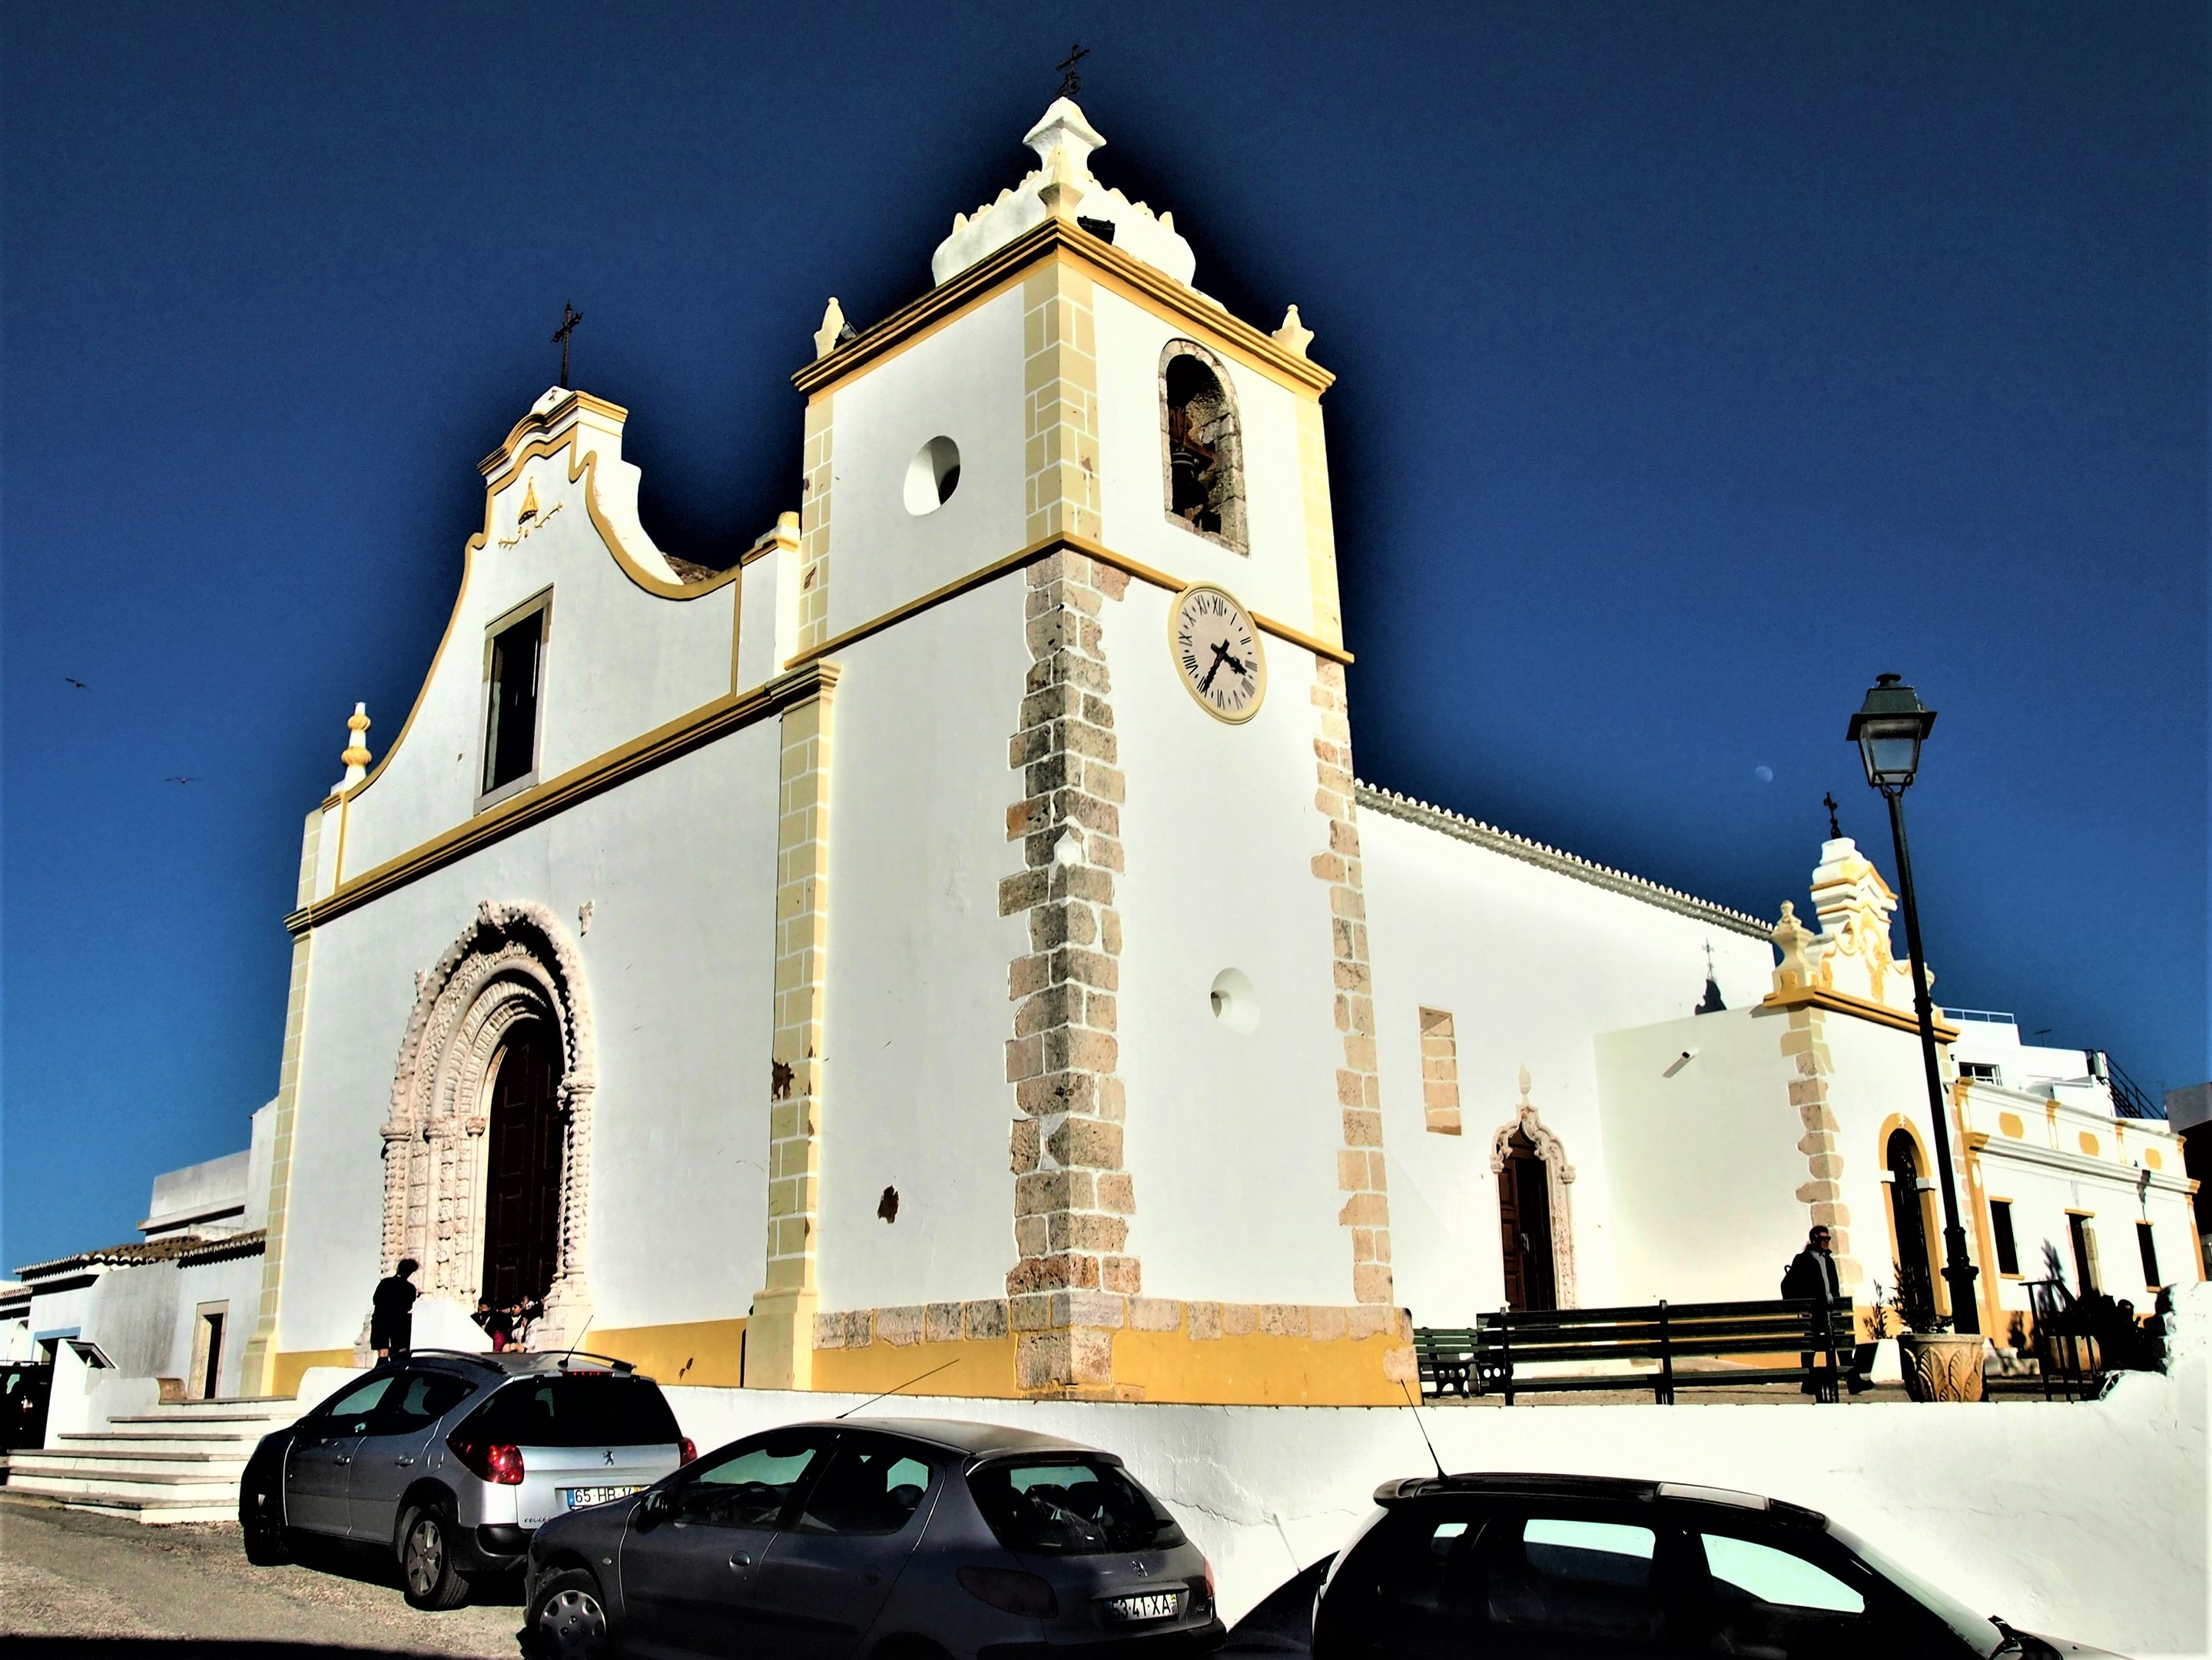 Igreja do Divino Salvador - Alvor Church